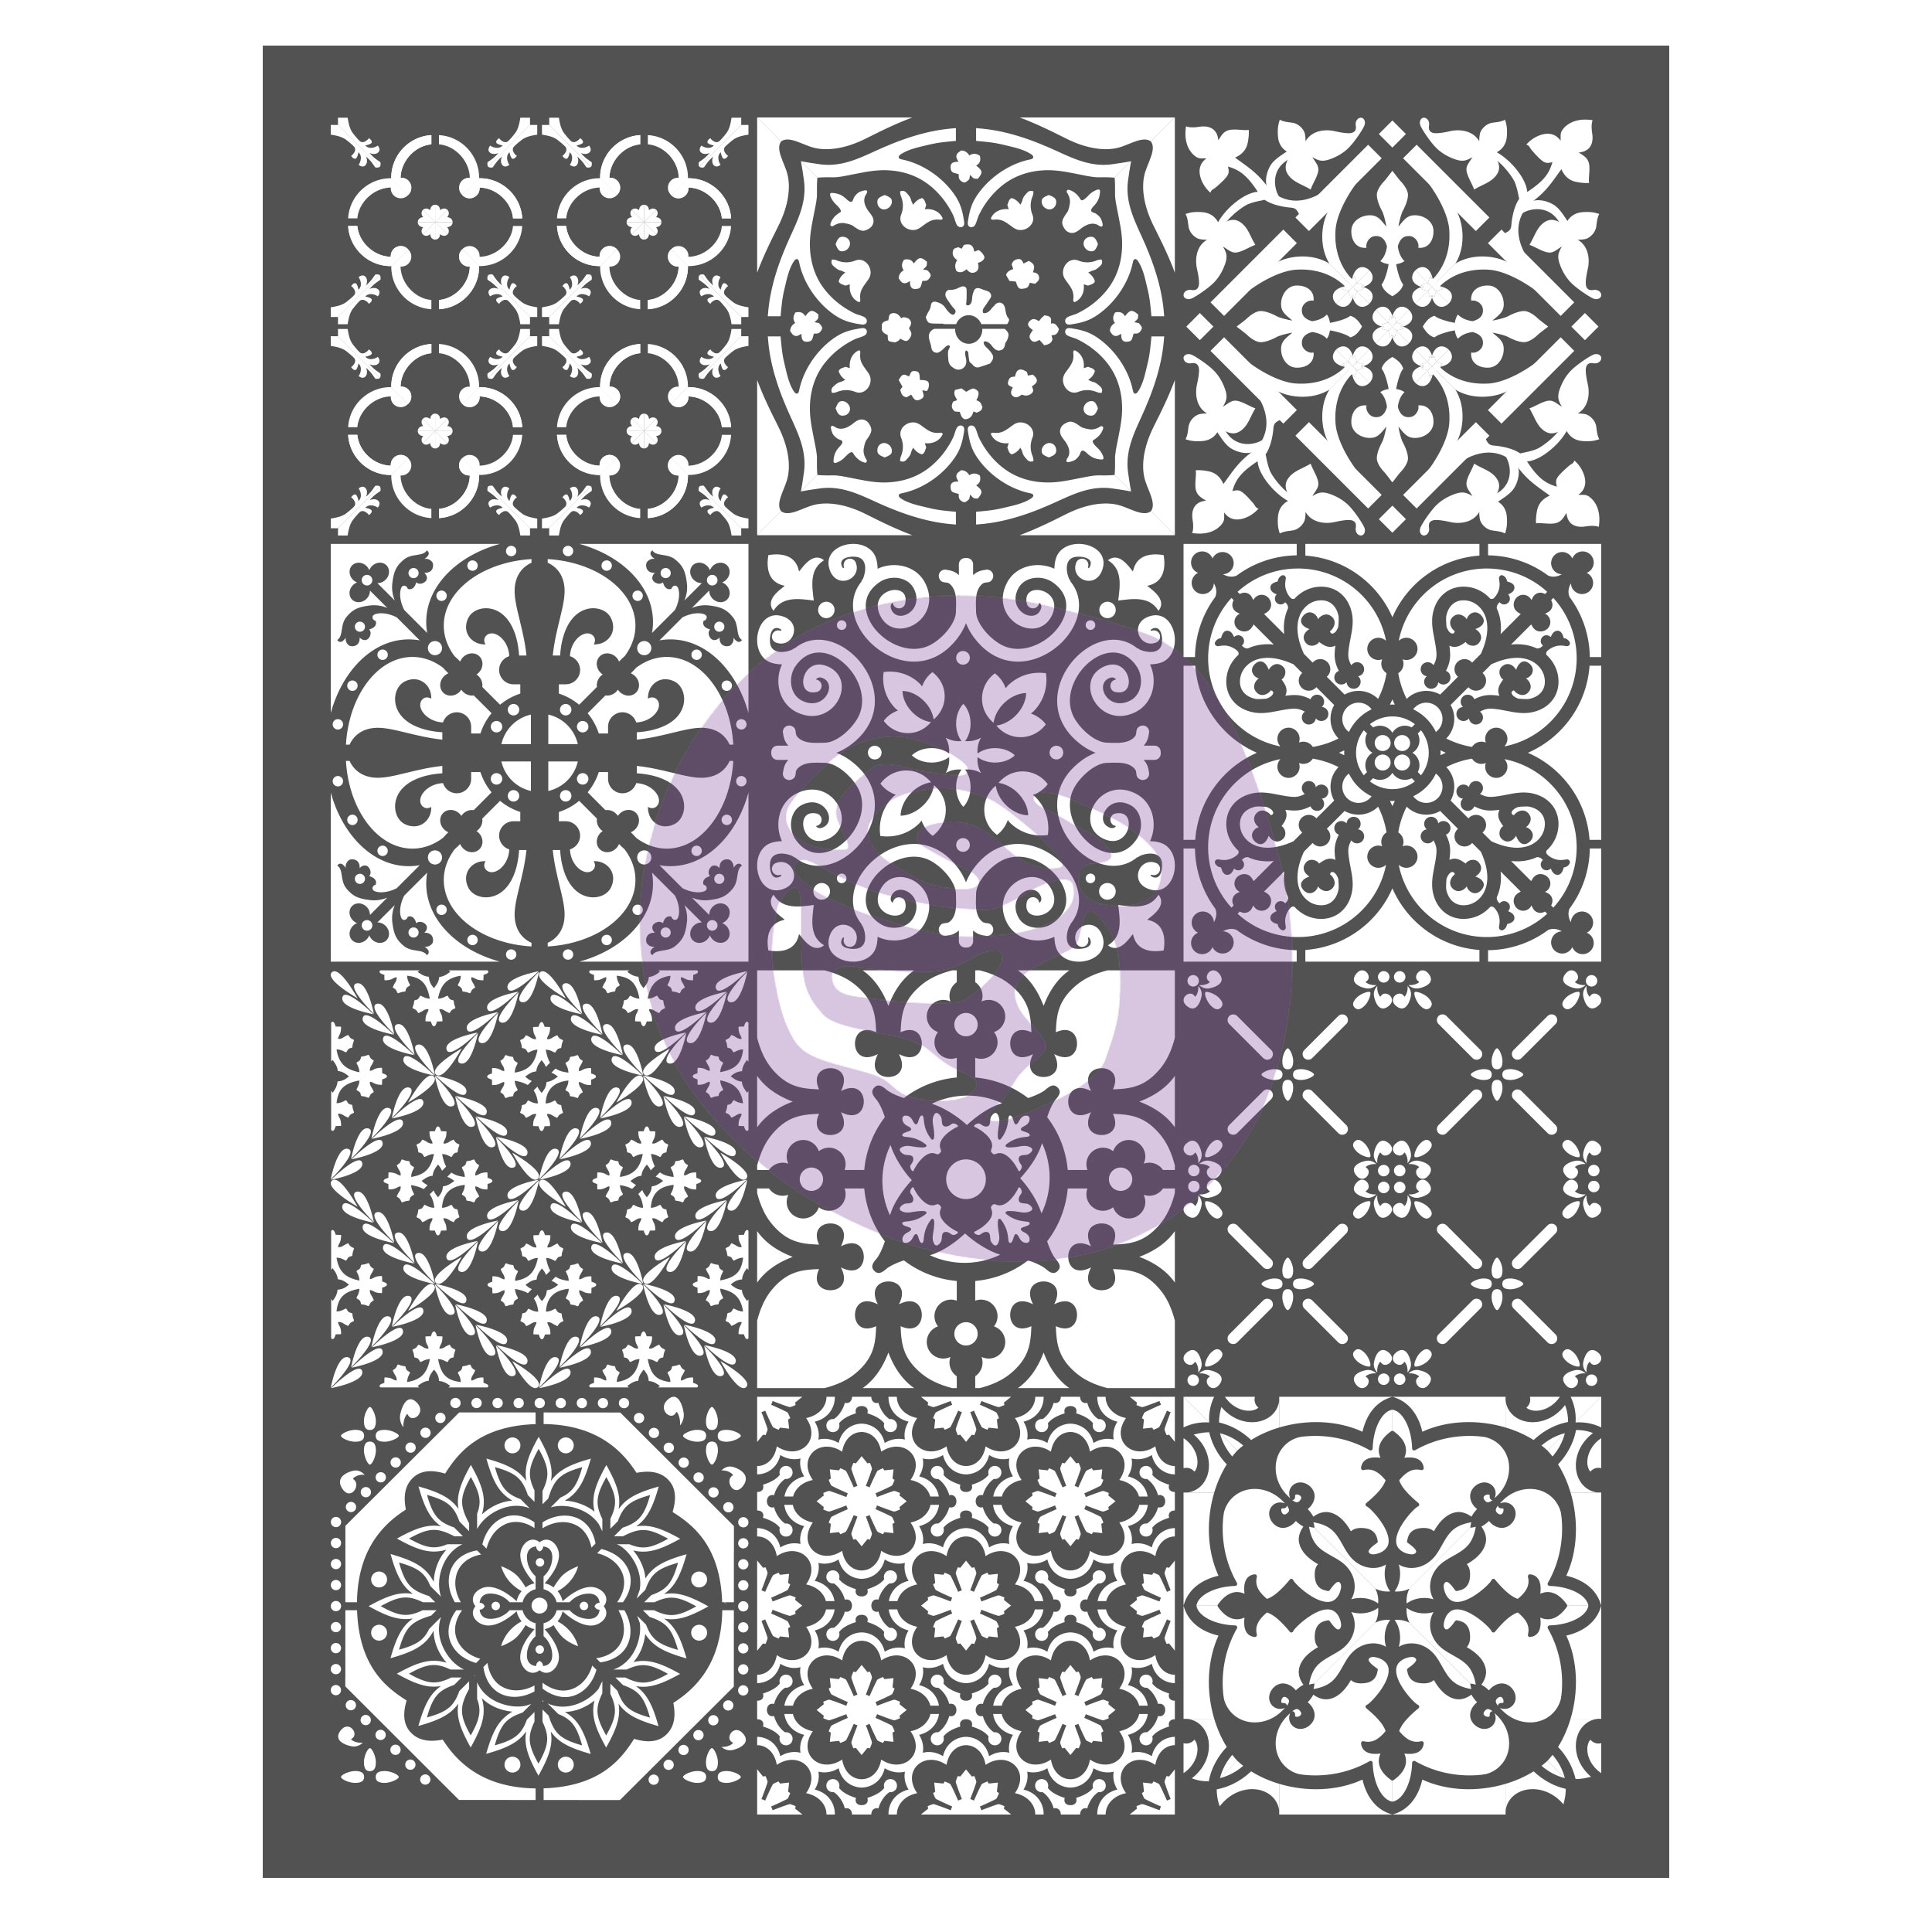 This is our Patchwork Stencil-633332. It has a mixture of fun patterns and highly detailed designs. Use with any color combinations to go with the colors in your decor...